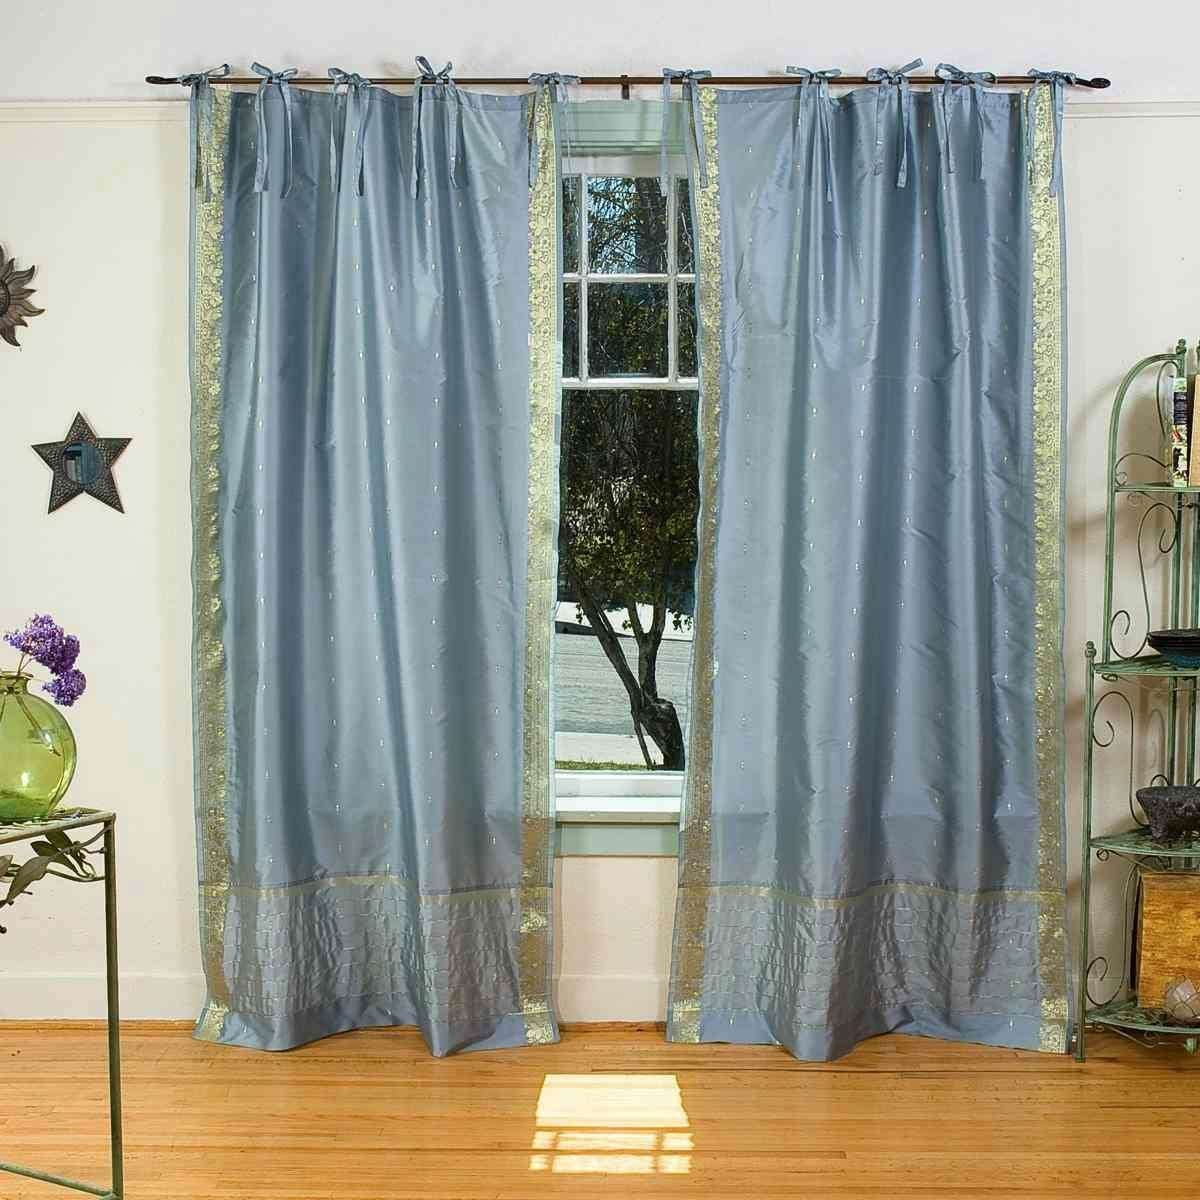 Indian Selections Lined-Gray Tie Top Sheer Sari Curtain Drape Panel – 80W x 120L – Pair